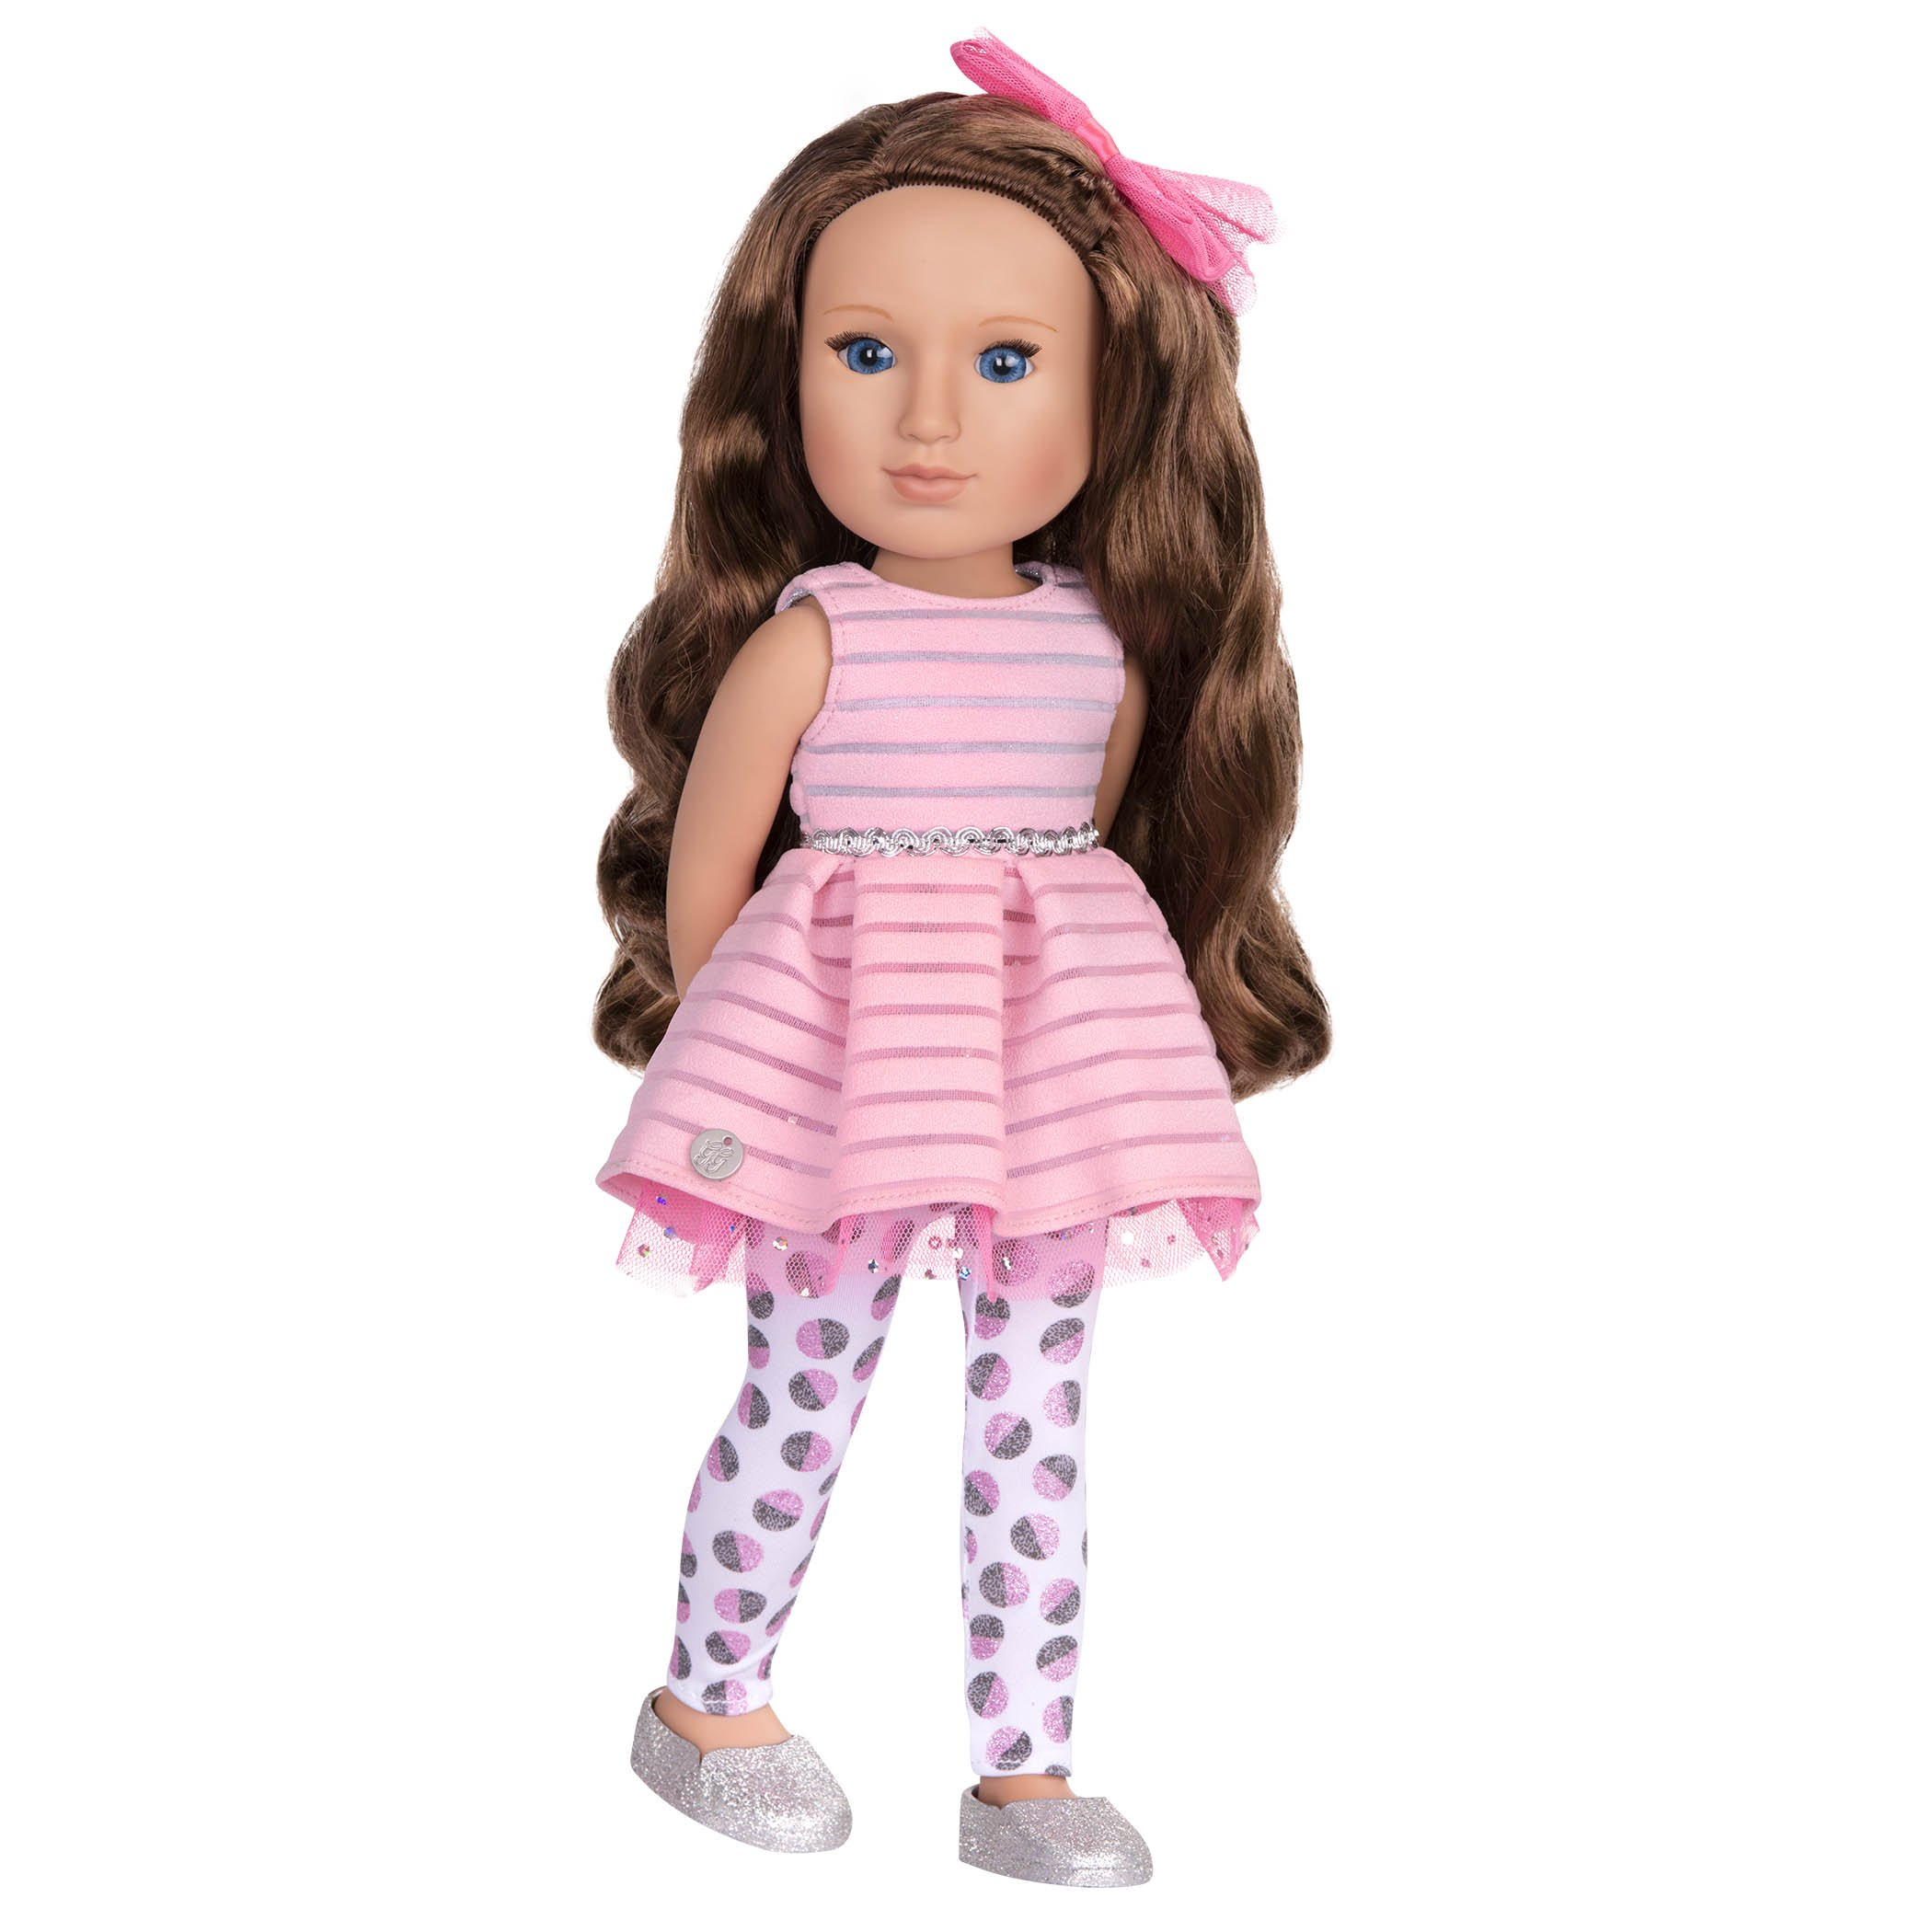 Battat Glitter Girls Bluebell 14 inch Fashion Doll - Dolls for Girls Age 3 and Up - Doll, Clothing and Accessories - Children's Toys